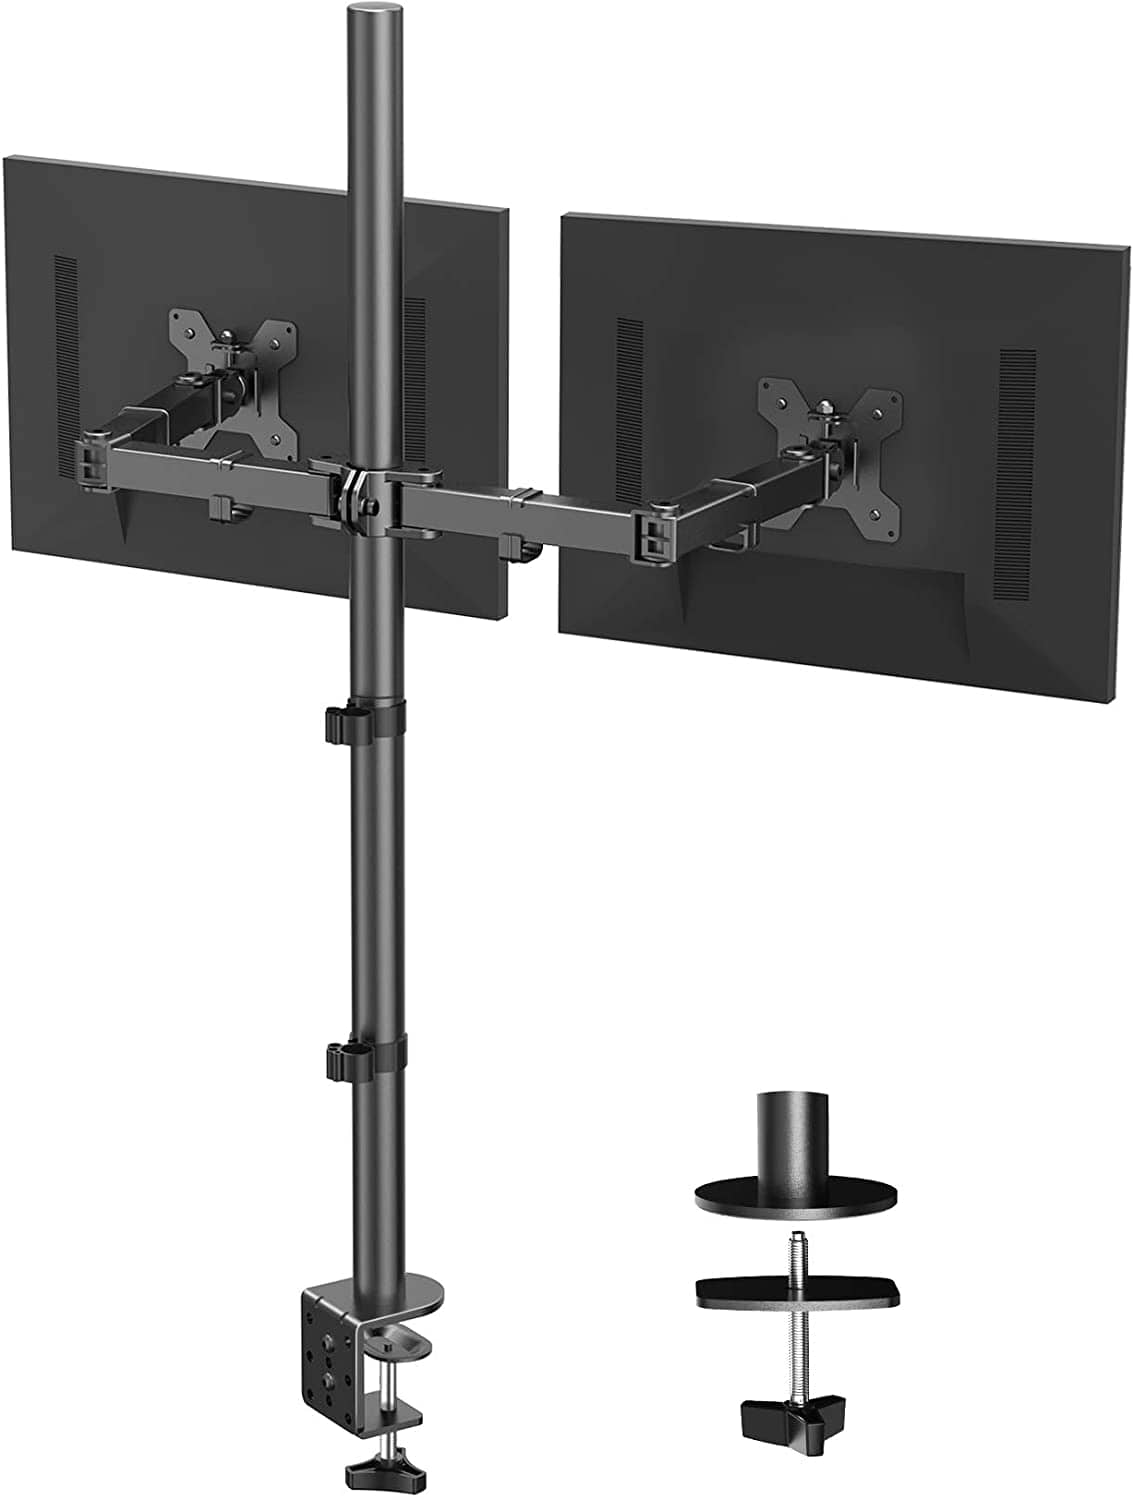 HUANUO Dual Monitor Stand with Extra Tall Pole 39.37 inch, Fully Adjustable Monitor Mount, C Clamp & Grommet Mounting Base $29.99 + FS